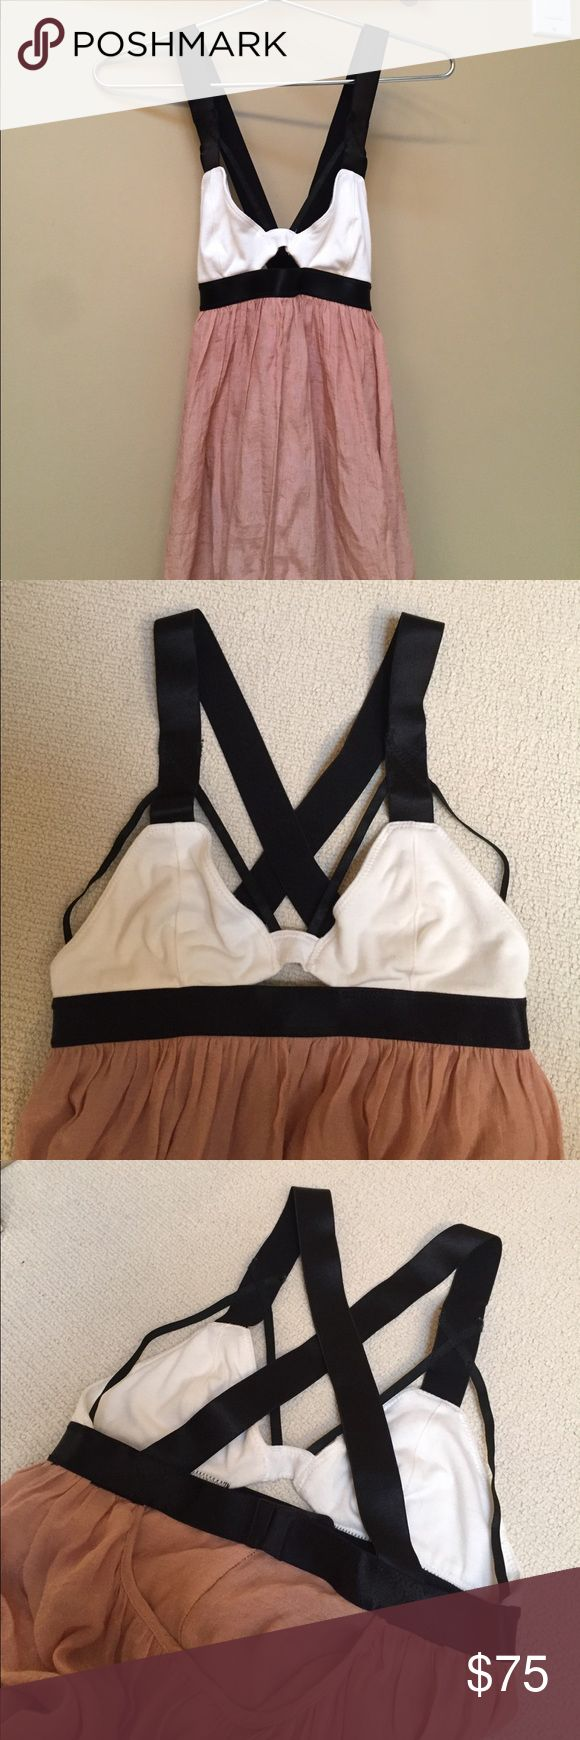 Blessed Are The Meek Maxi Dress Tan skirt with black & white cutout top, purchased from Free People. Only worn once. Free People Dresses Maxi